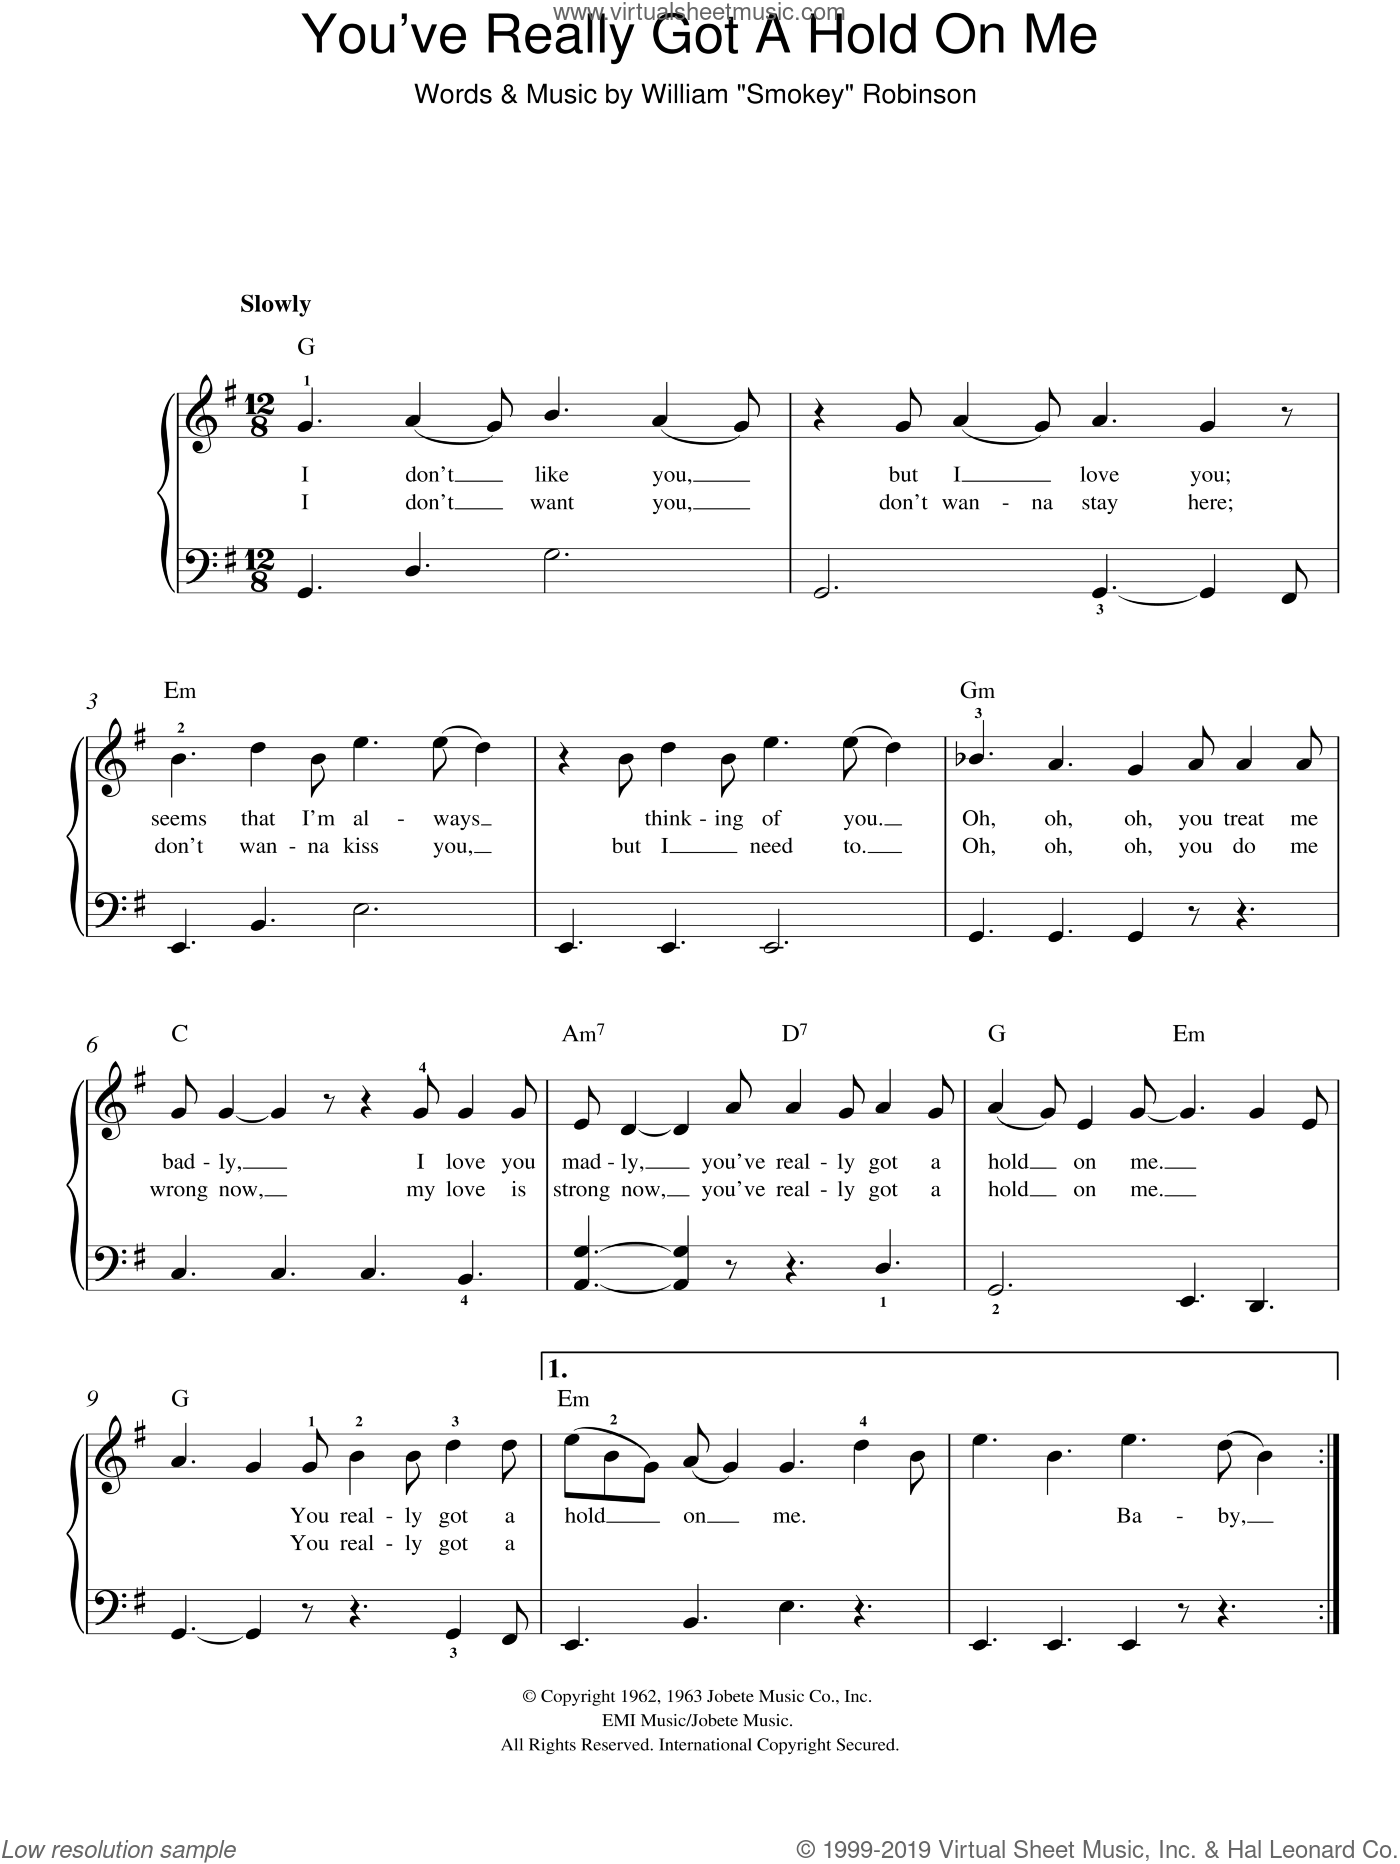 You've Really Got A Hold On Me sheet music for piano solo (chords) by William 'Smokey' Robinson